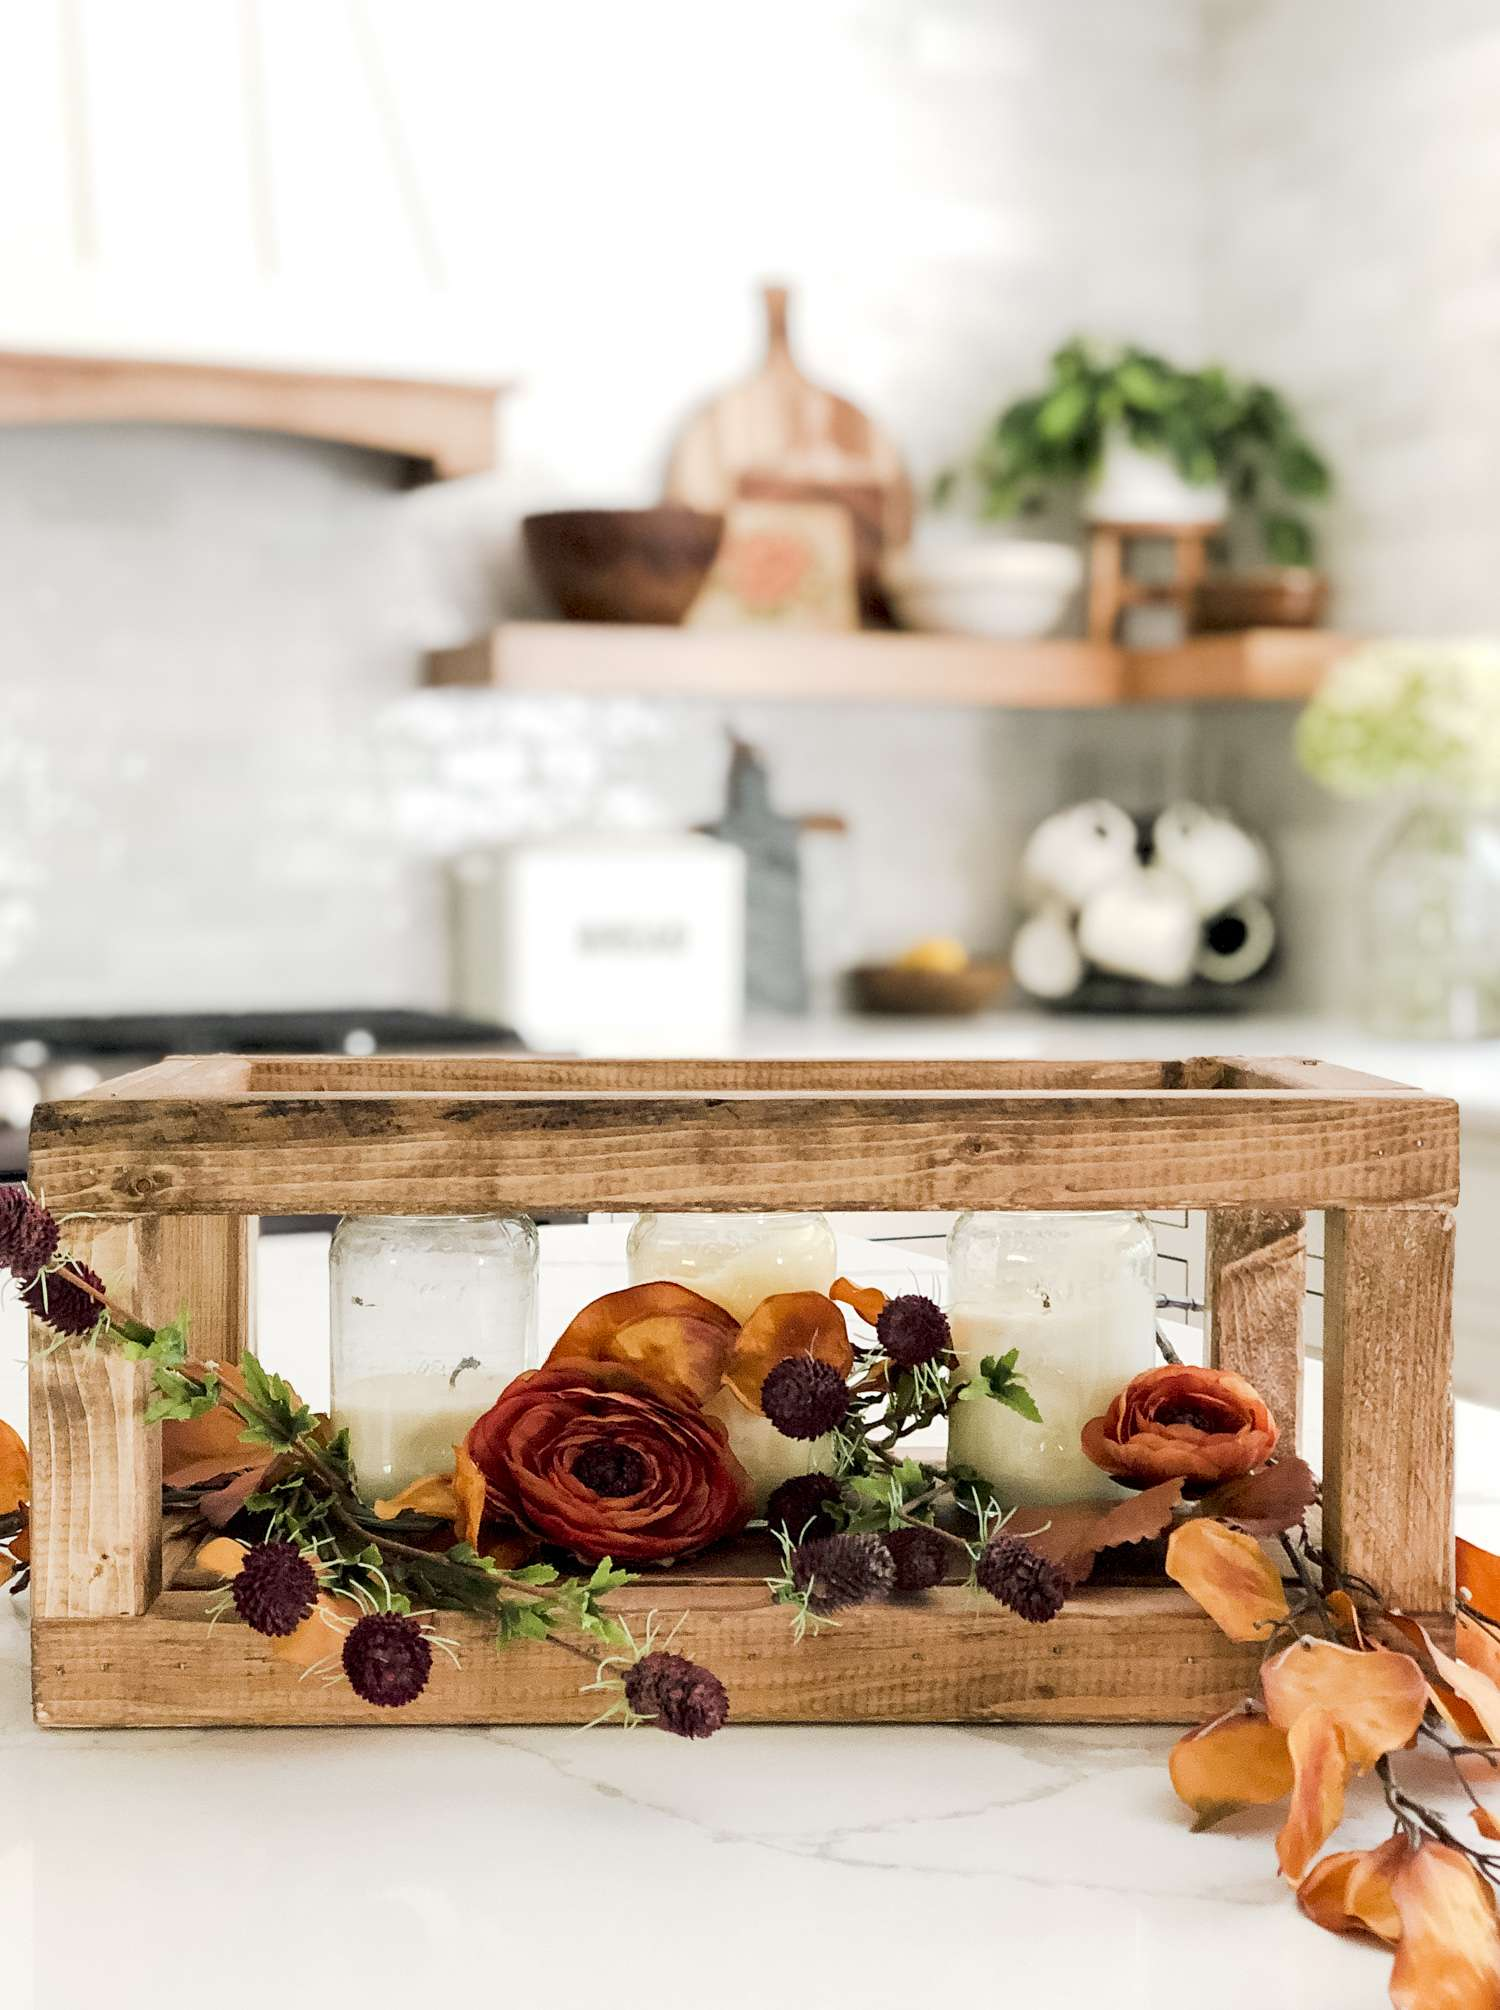 Small wood projects are a great way to decorate your home affordably! Use this tutorial, with video, to learn how to make a DIY wood centerpiece!